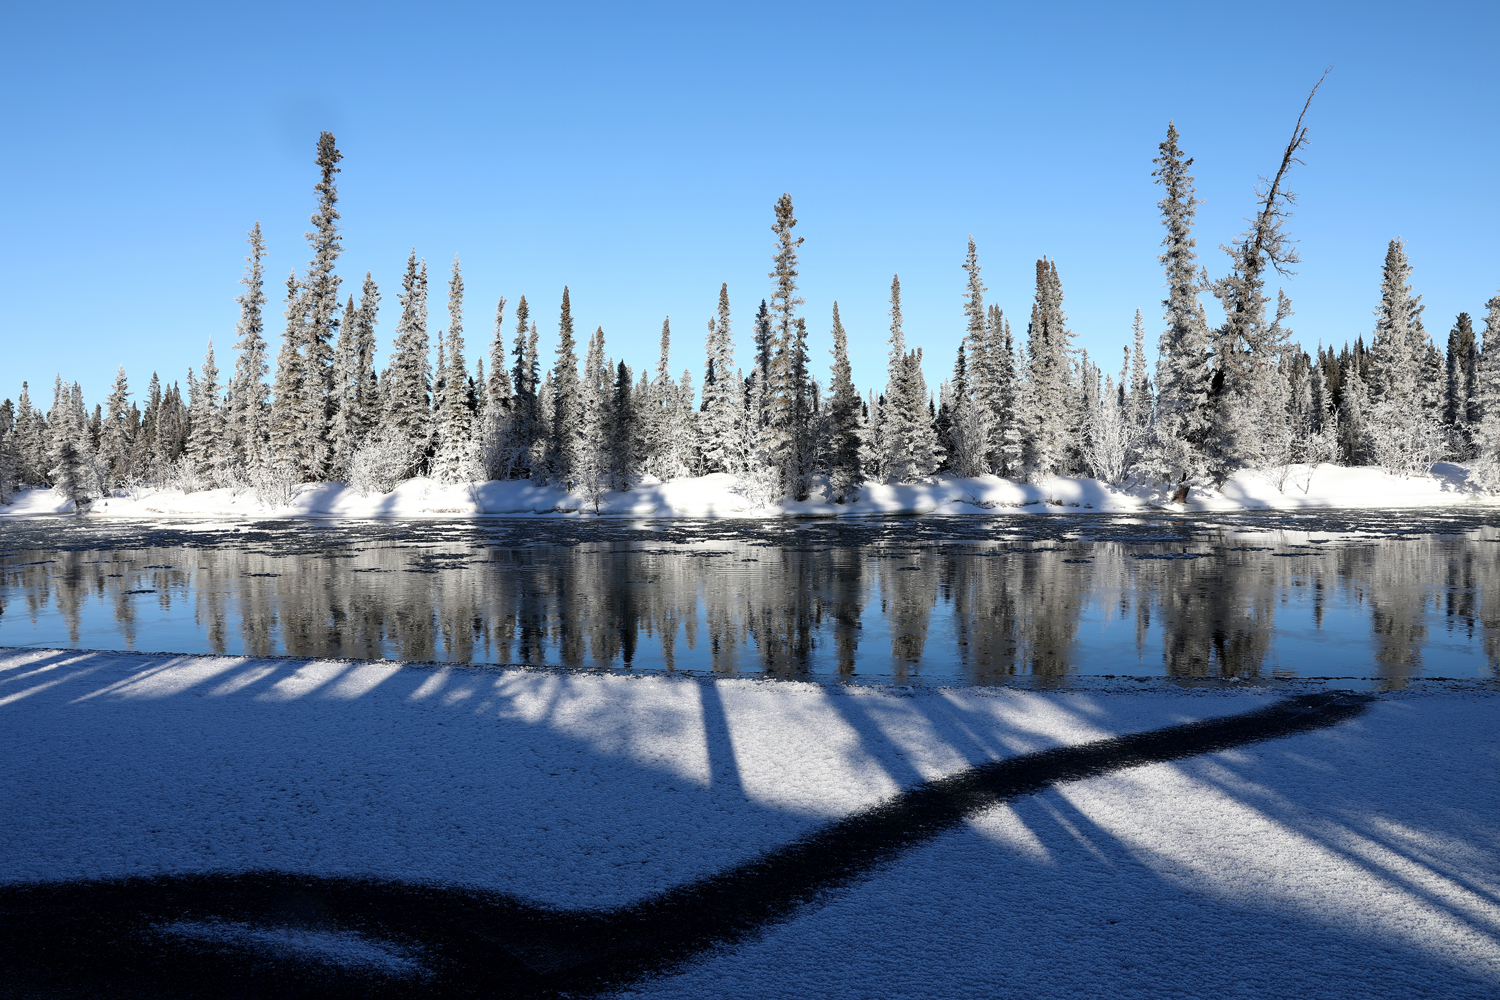 The Black Line Project, Clearwater River, Alaska